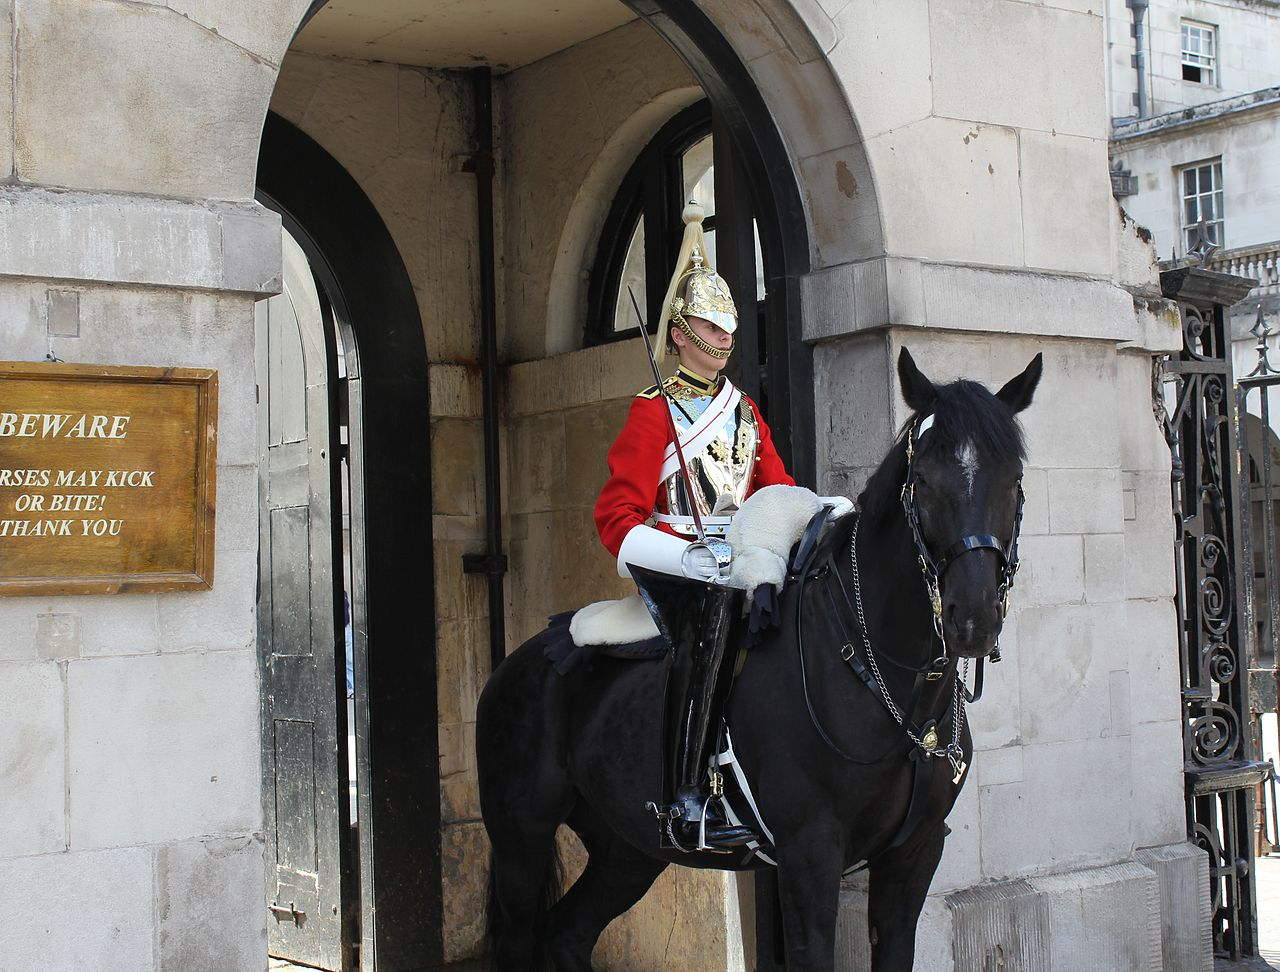 [img]https://upload.wikimedia.org/wikipedia/commons/thumb/1/1d/Horseguardsentry2010.jpg/1280px-Horseguardsentry2010.jpg[/img]